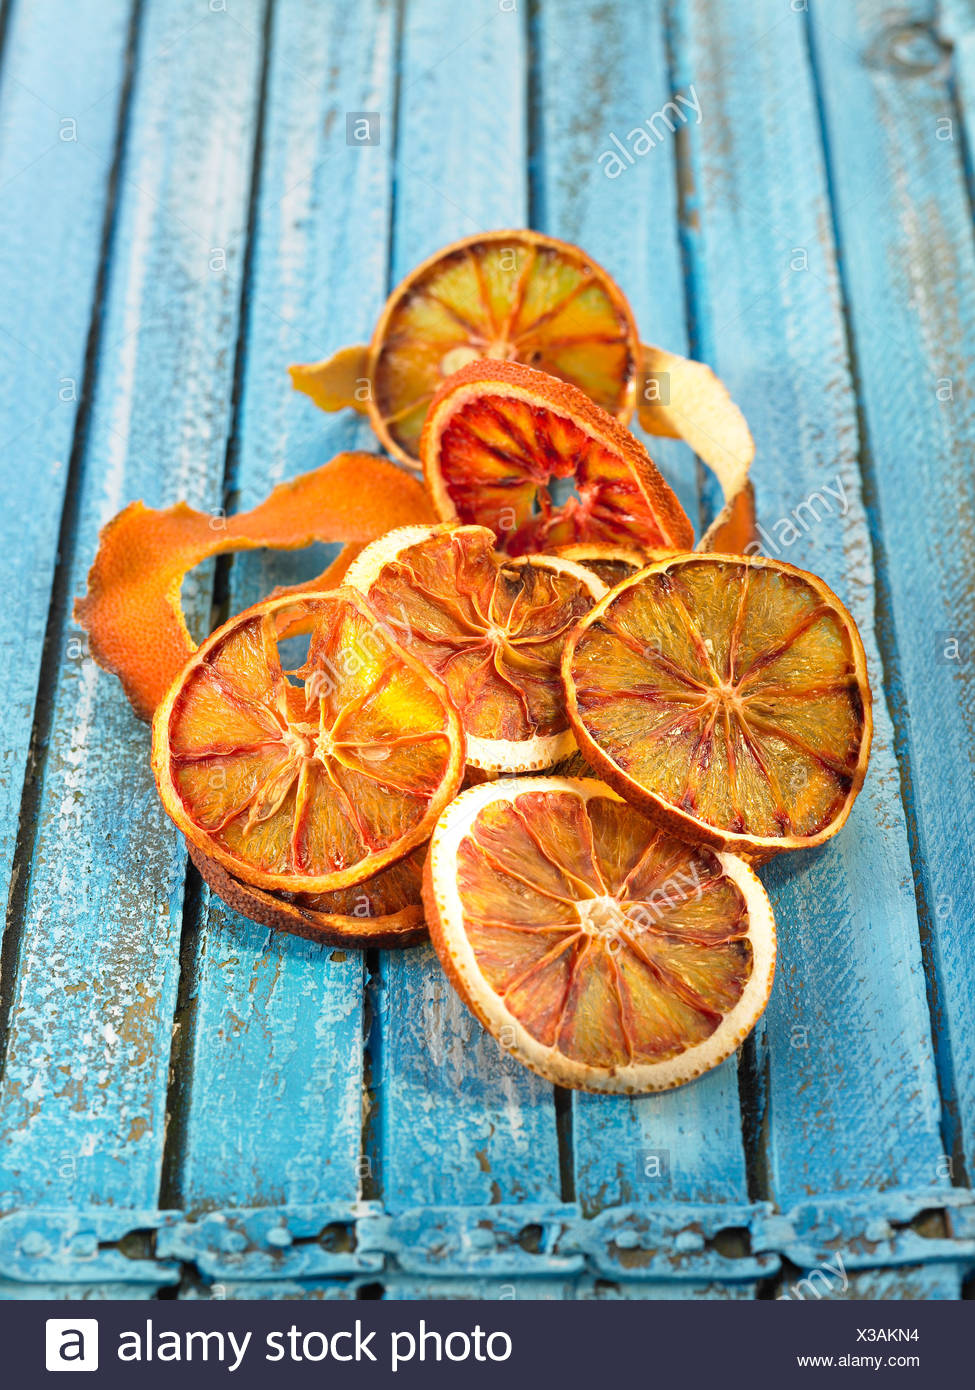 Dried slices of blood oranges - Stock Image